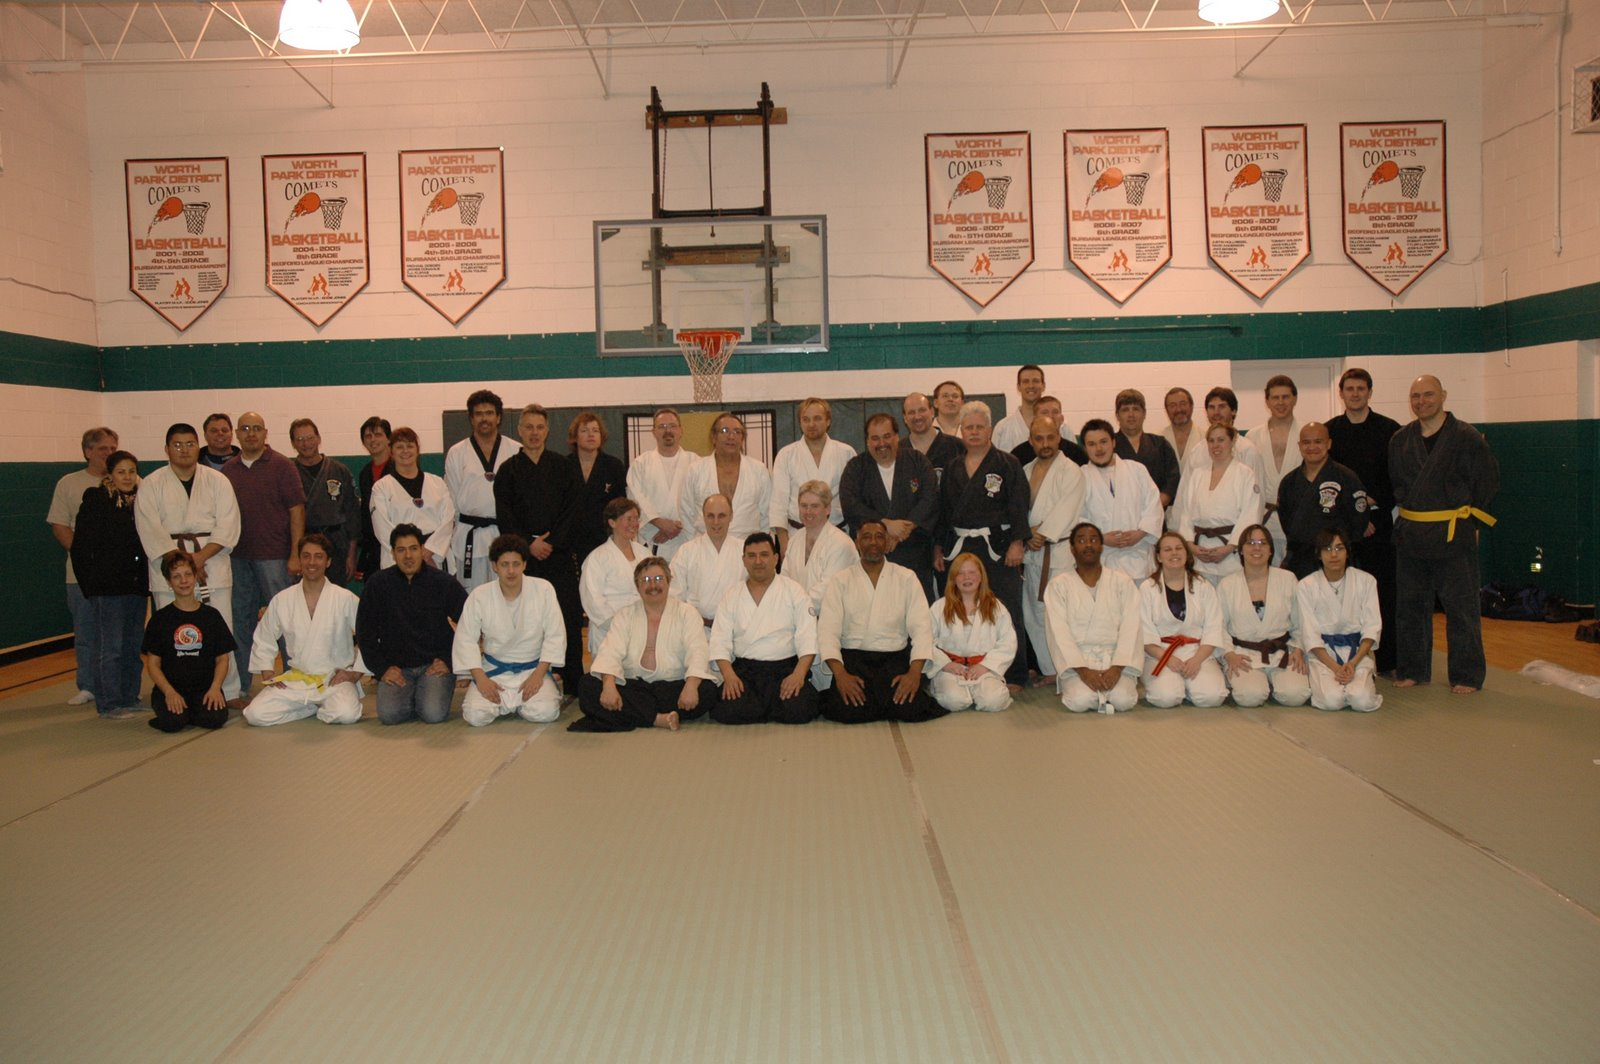 'Dent in the Mat' fundraiser for mats for Soseikan in its temporary park district location